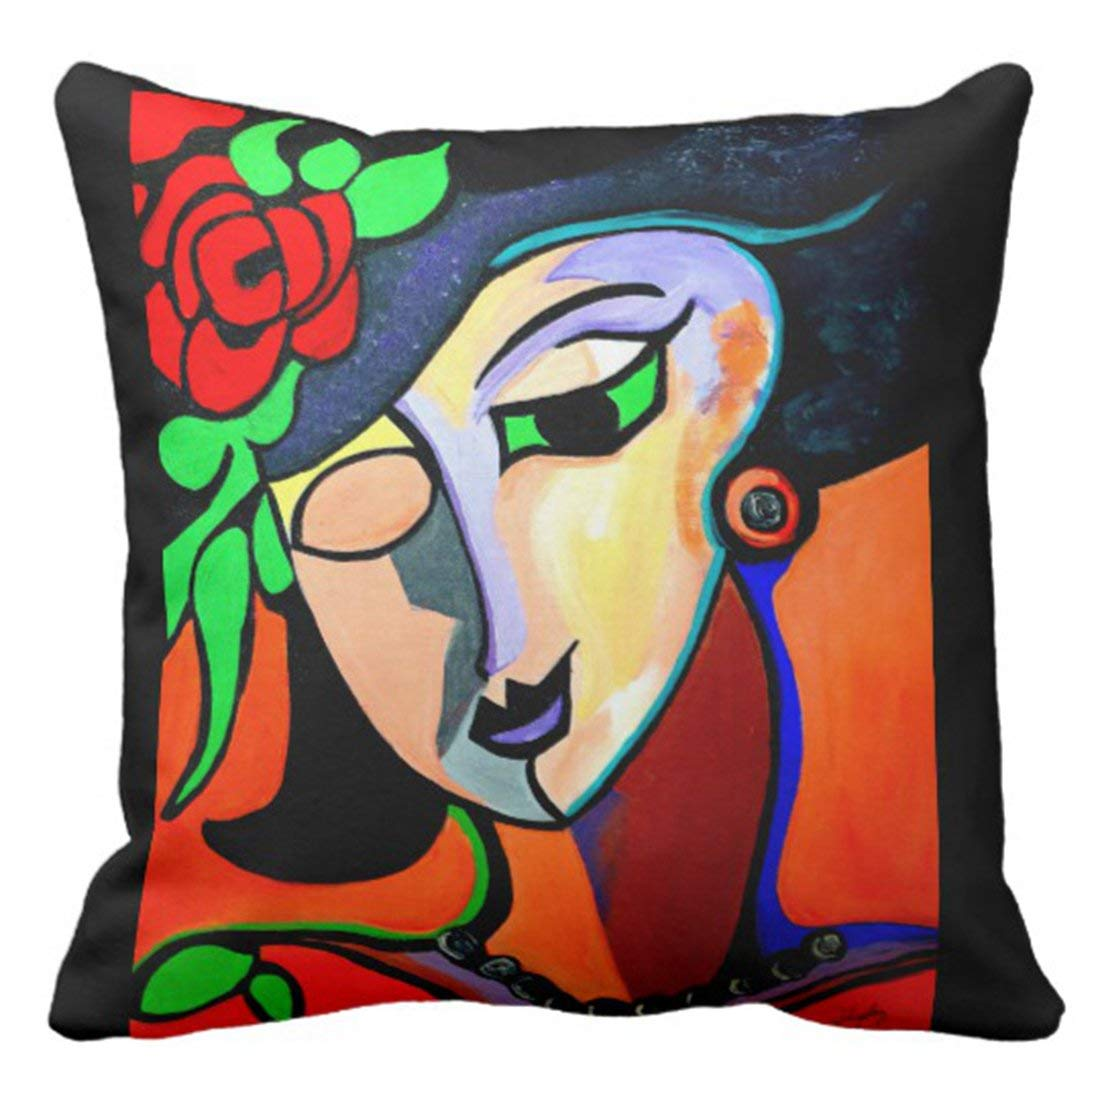 WOPOP Colorful Fun Picasso By Miss Rose Painting Pillowcase Cushion Cover 18x18 inches